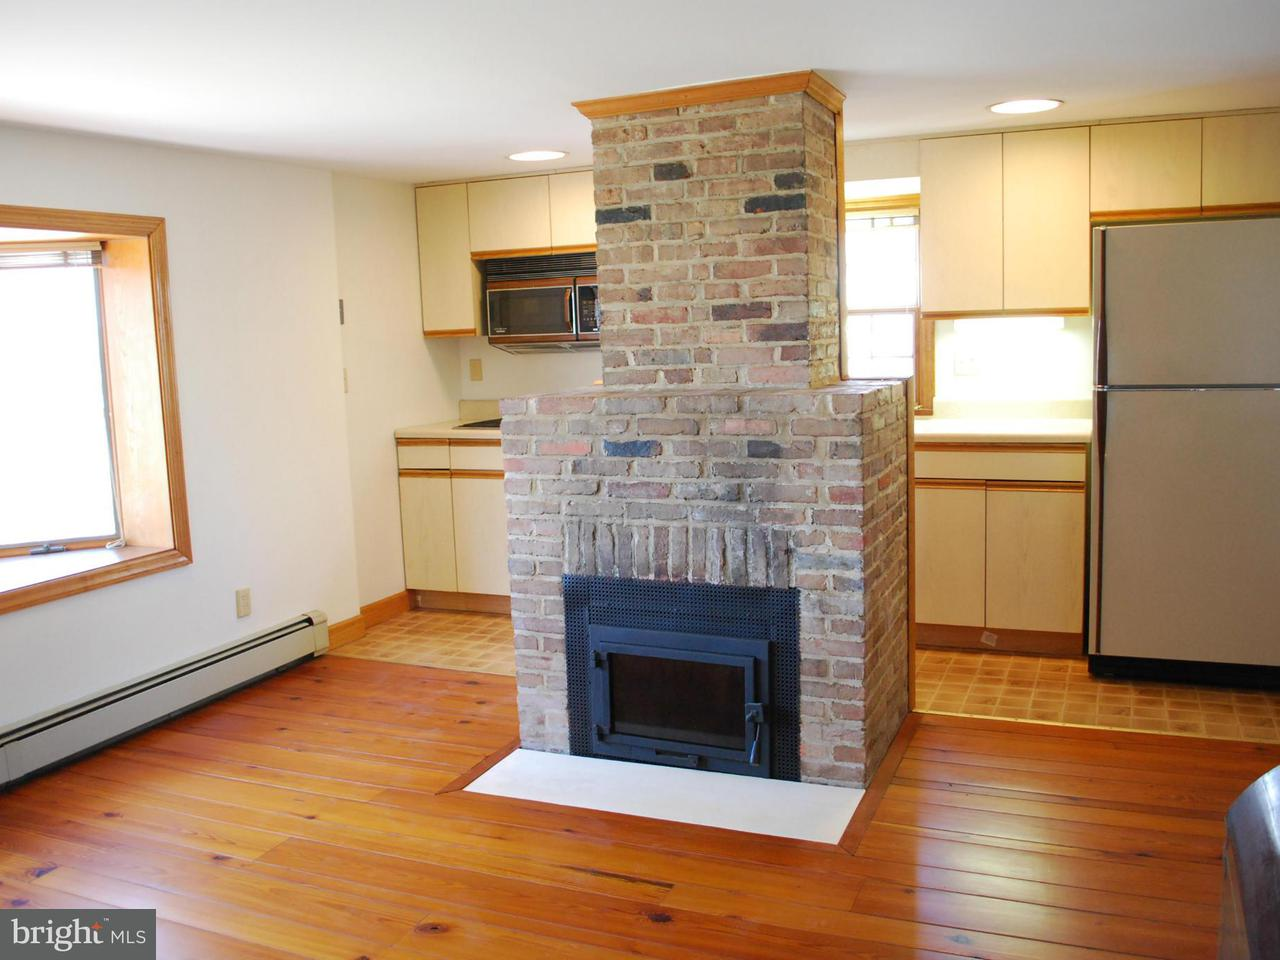 Additional photo for property listing at 210 Morris St S 210 Morris St S Oxford, Maryland 21654 Estados Unidos